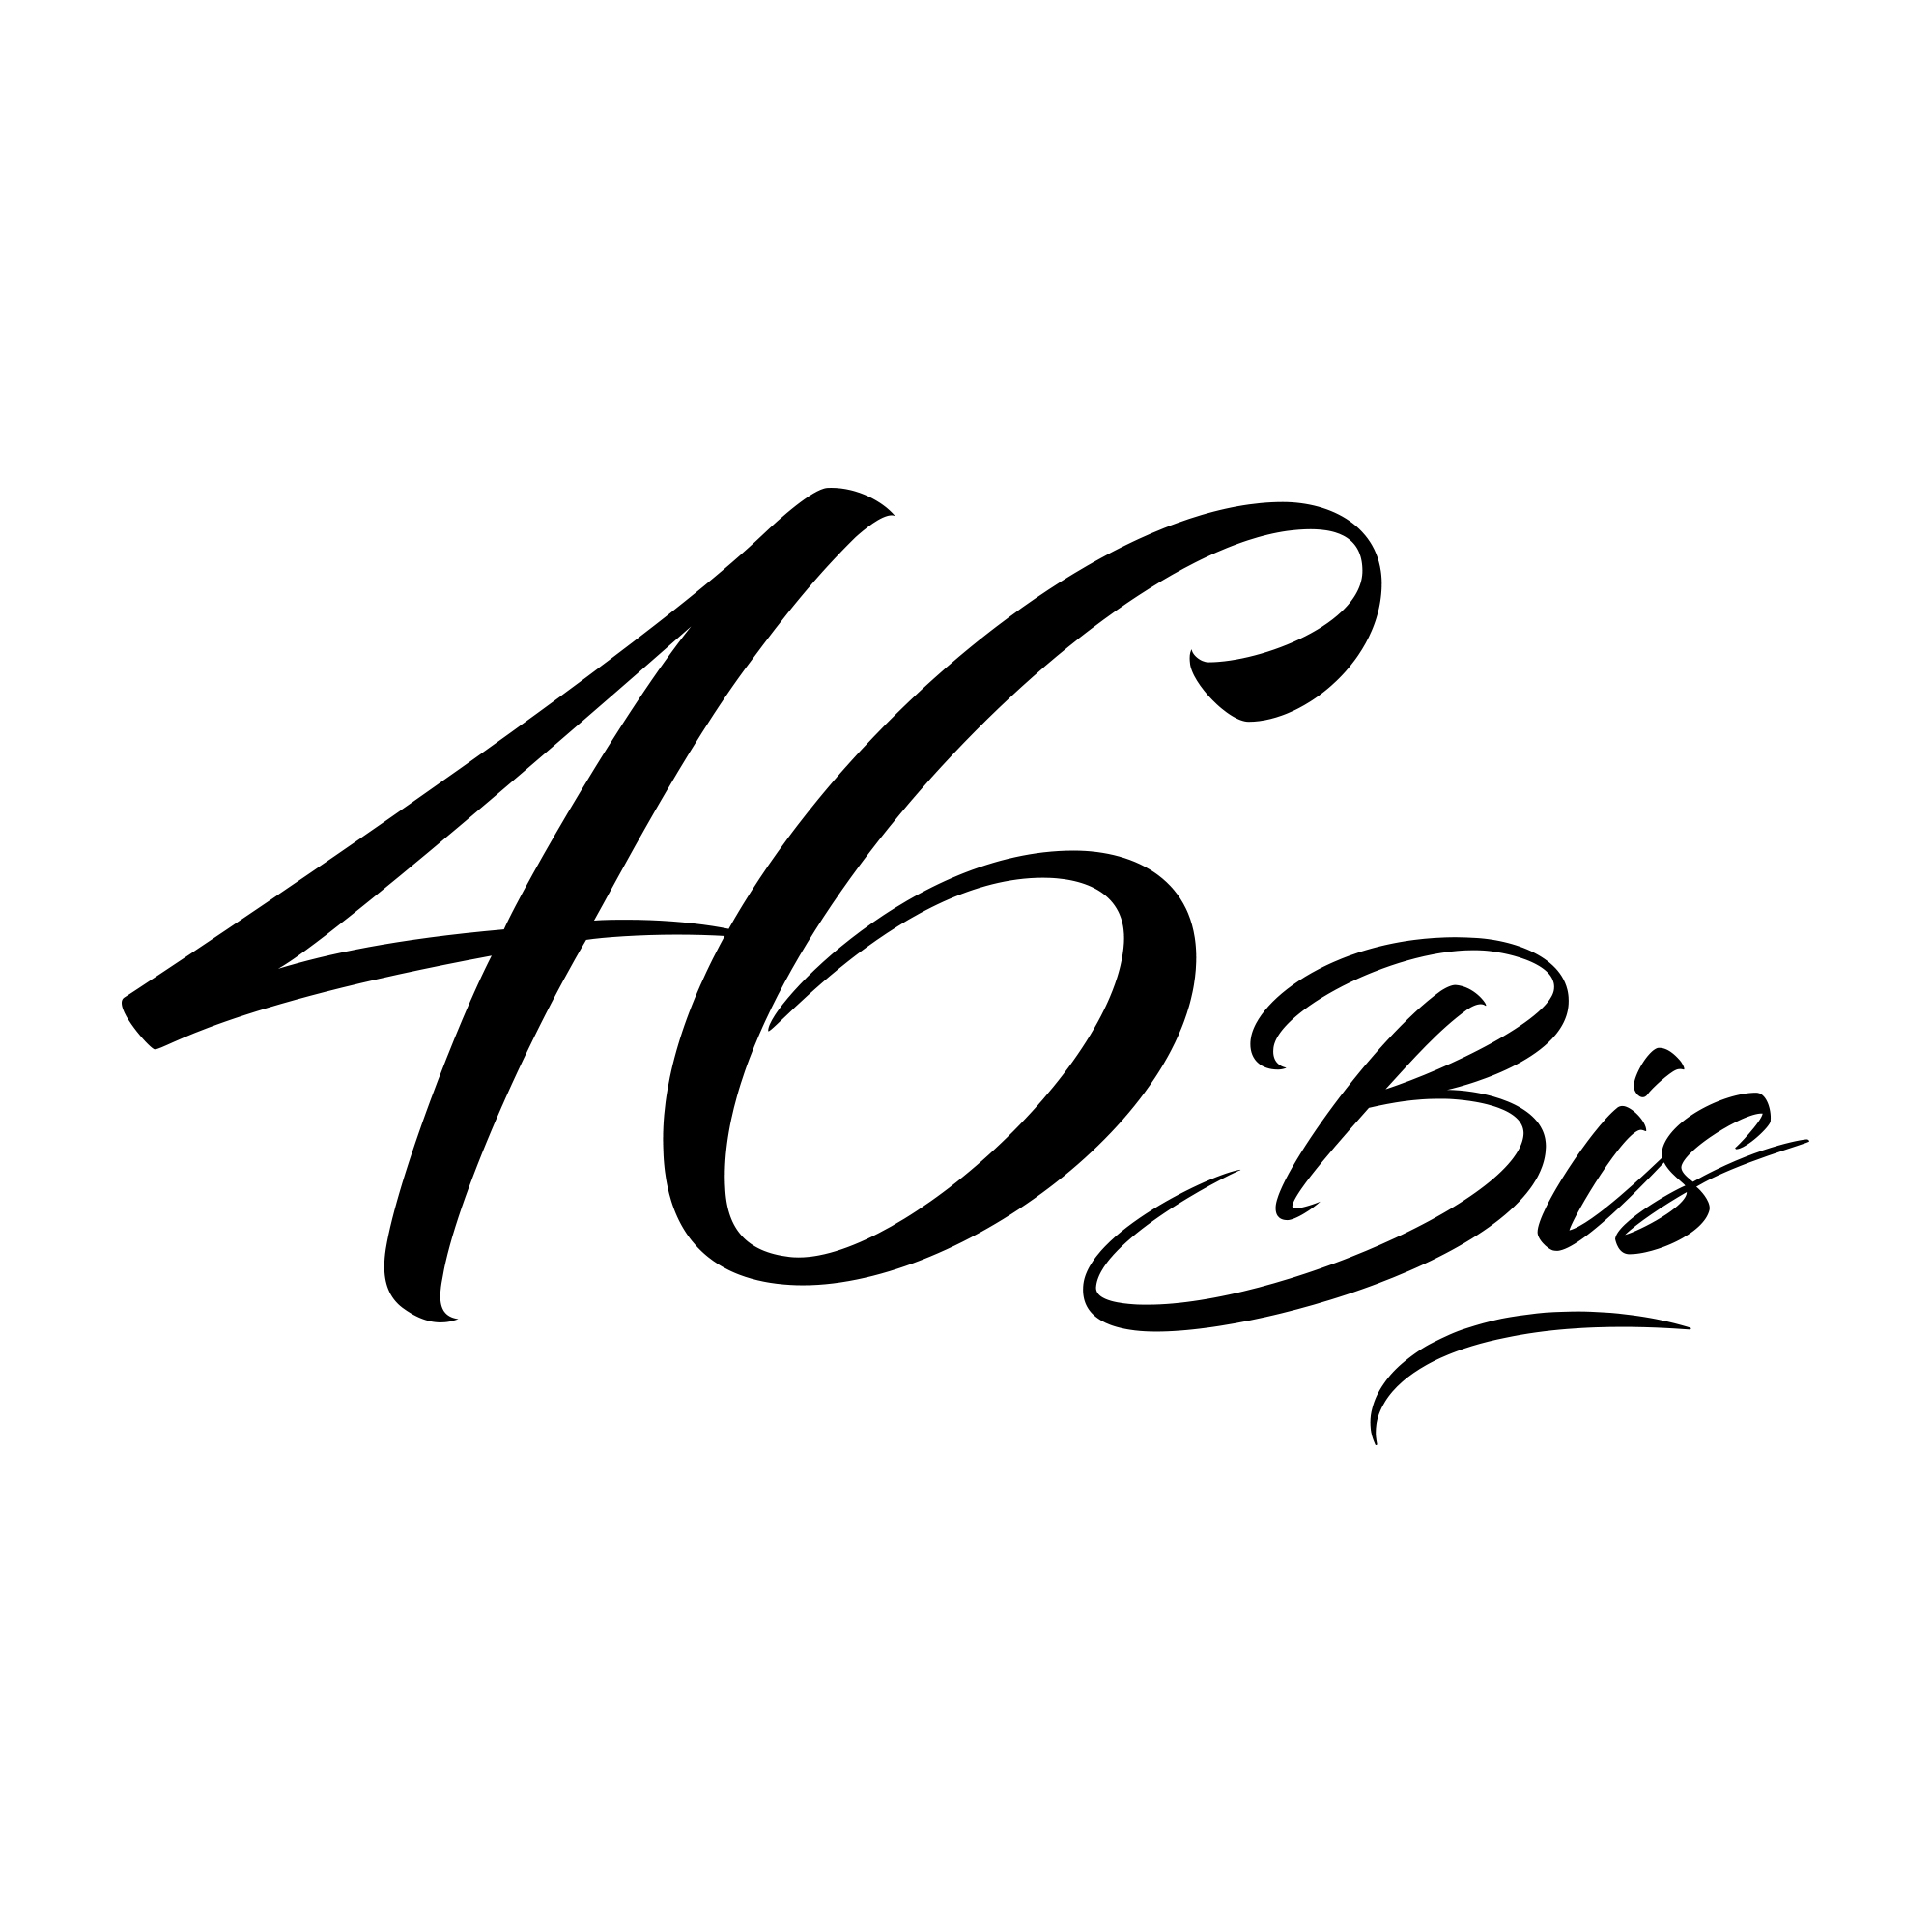 We are 46bis